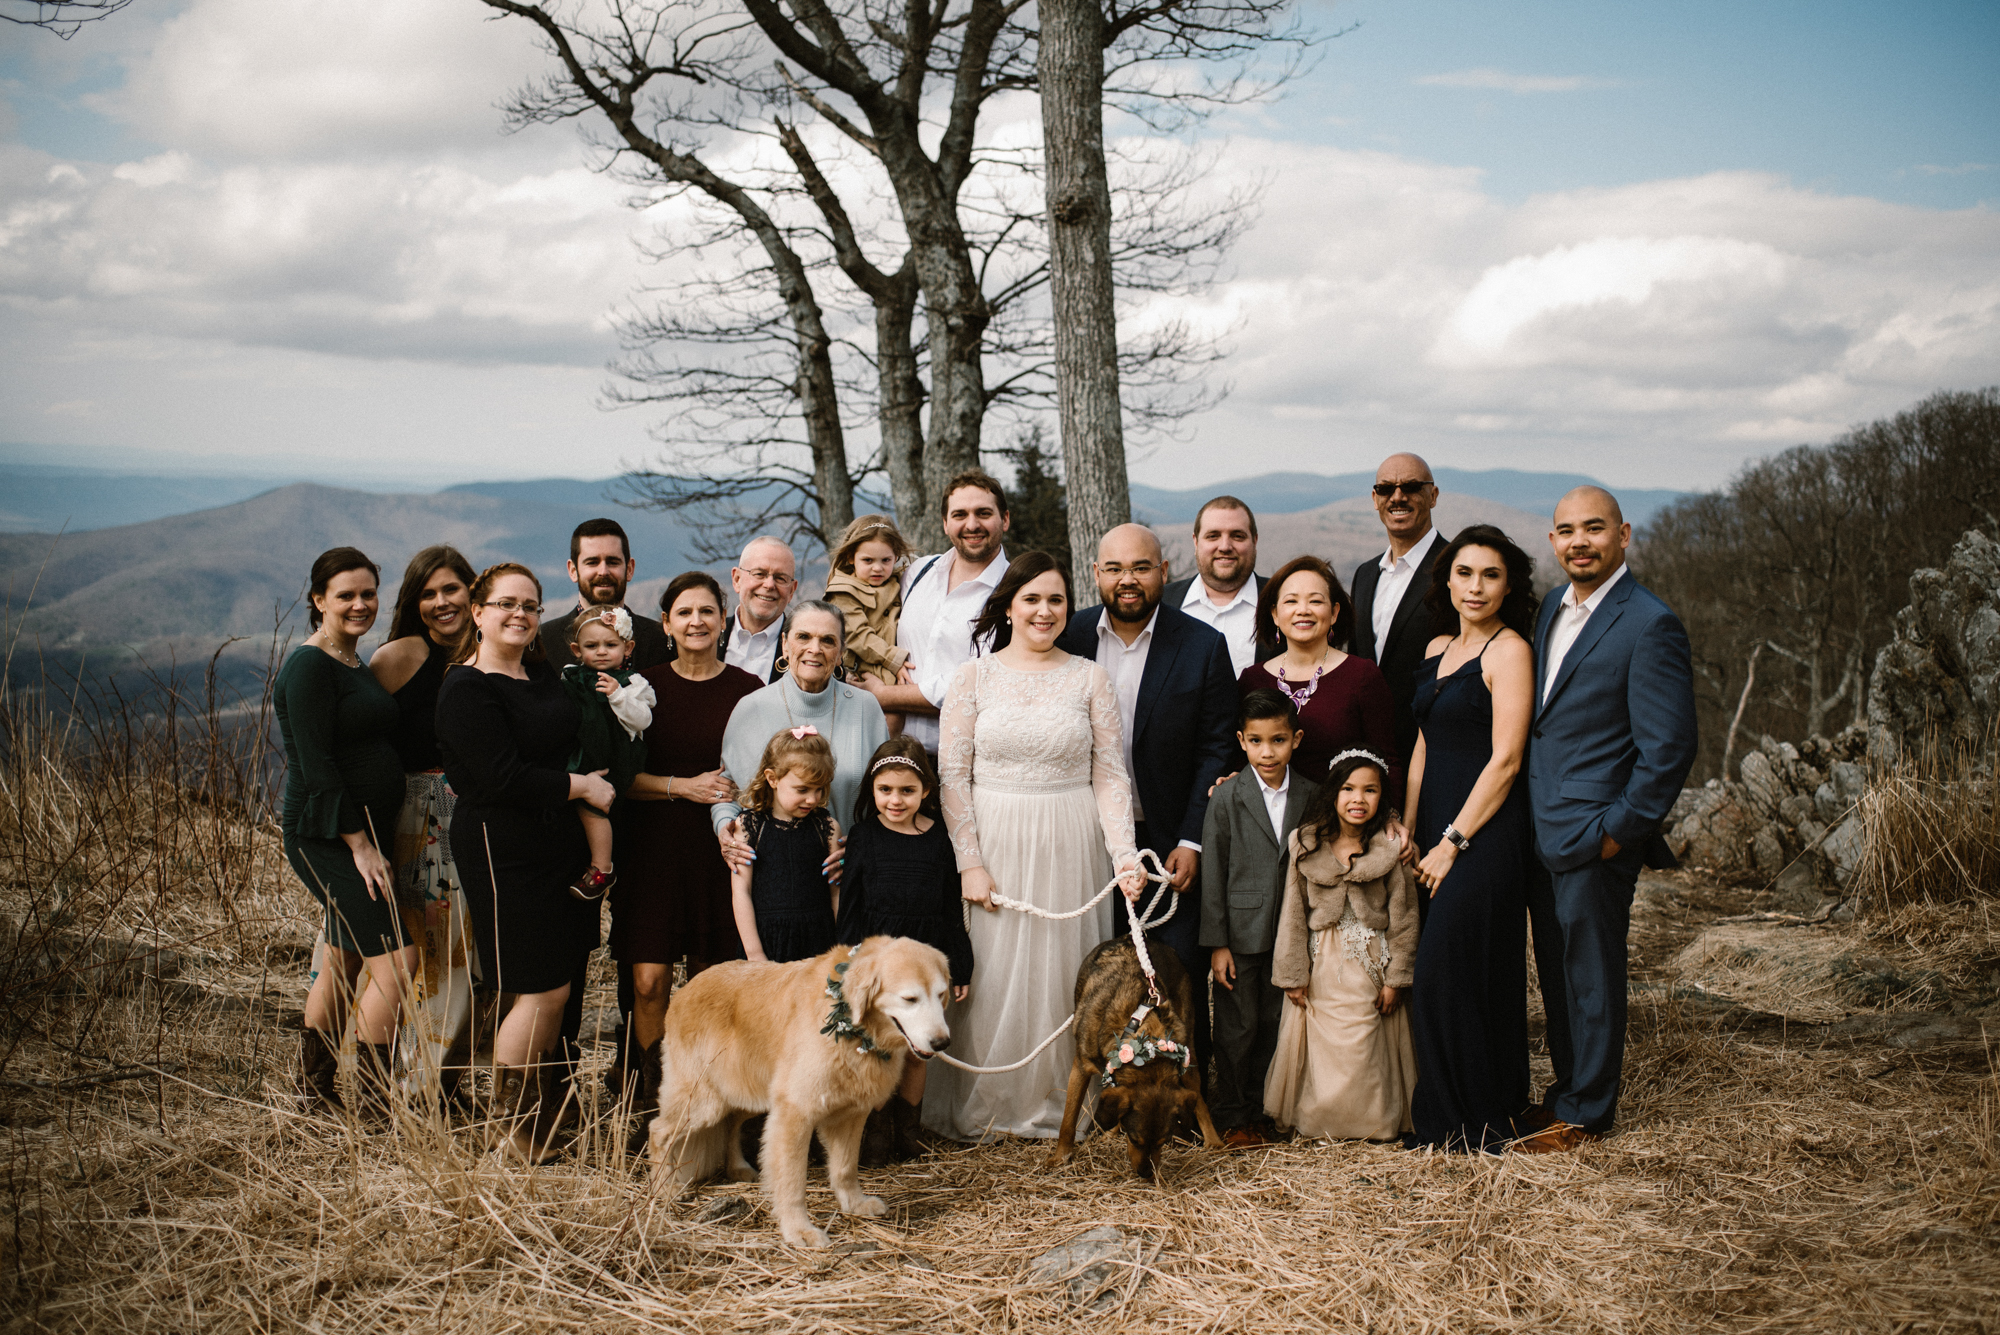 Emma and Jeddah - Intimate Luray Wedding - Shenandoah National Park Wedding - Adventure Elopement in Virginia - Shenandoah National Park Elopement_39.jpg